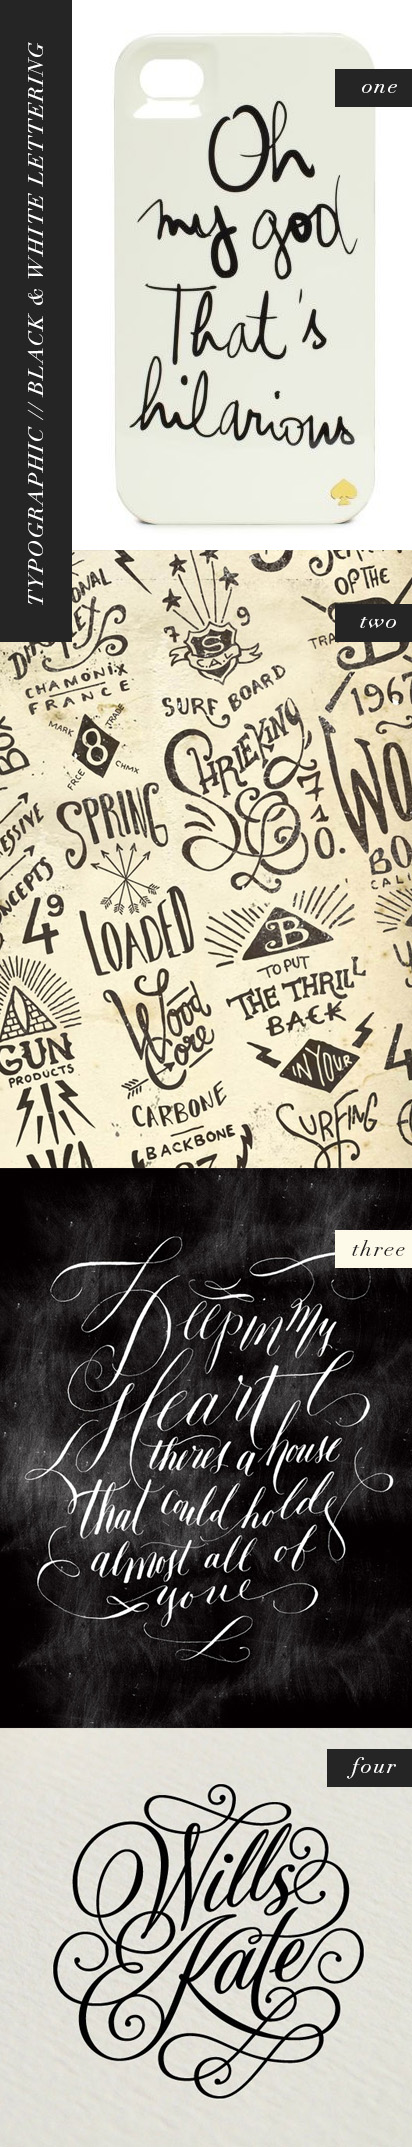 typo graphic, black and white lettering, by kelsey of pinegate road